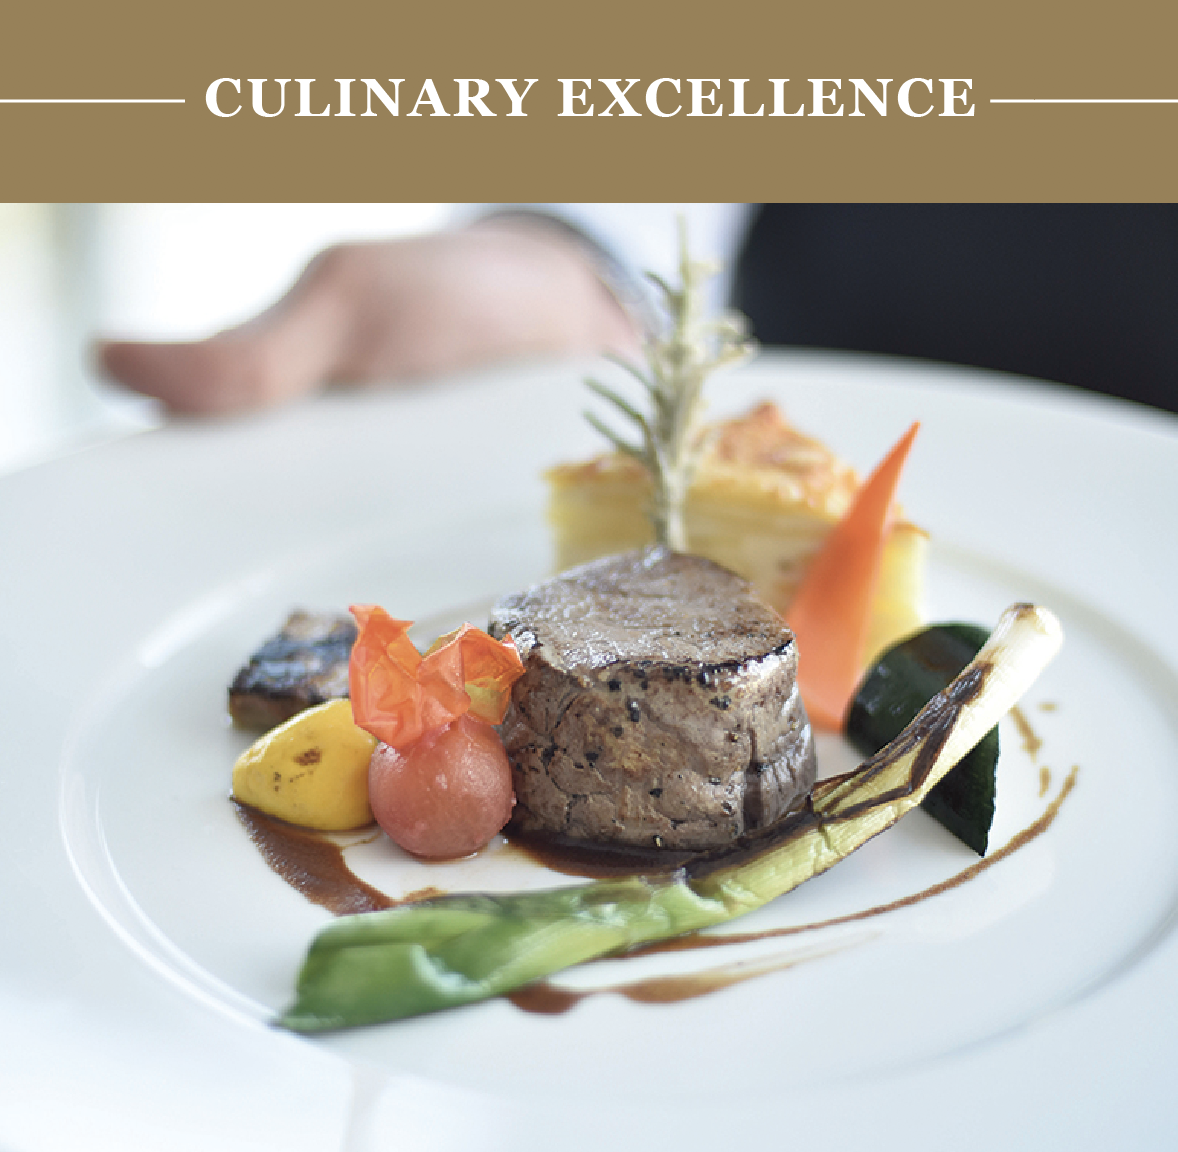 Enjoy on board five star onboard cuisine, culinary excursions, welcome a Michelin-starred chef, and dine in restaurants handpicked for you.